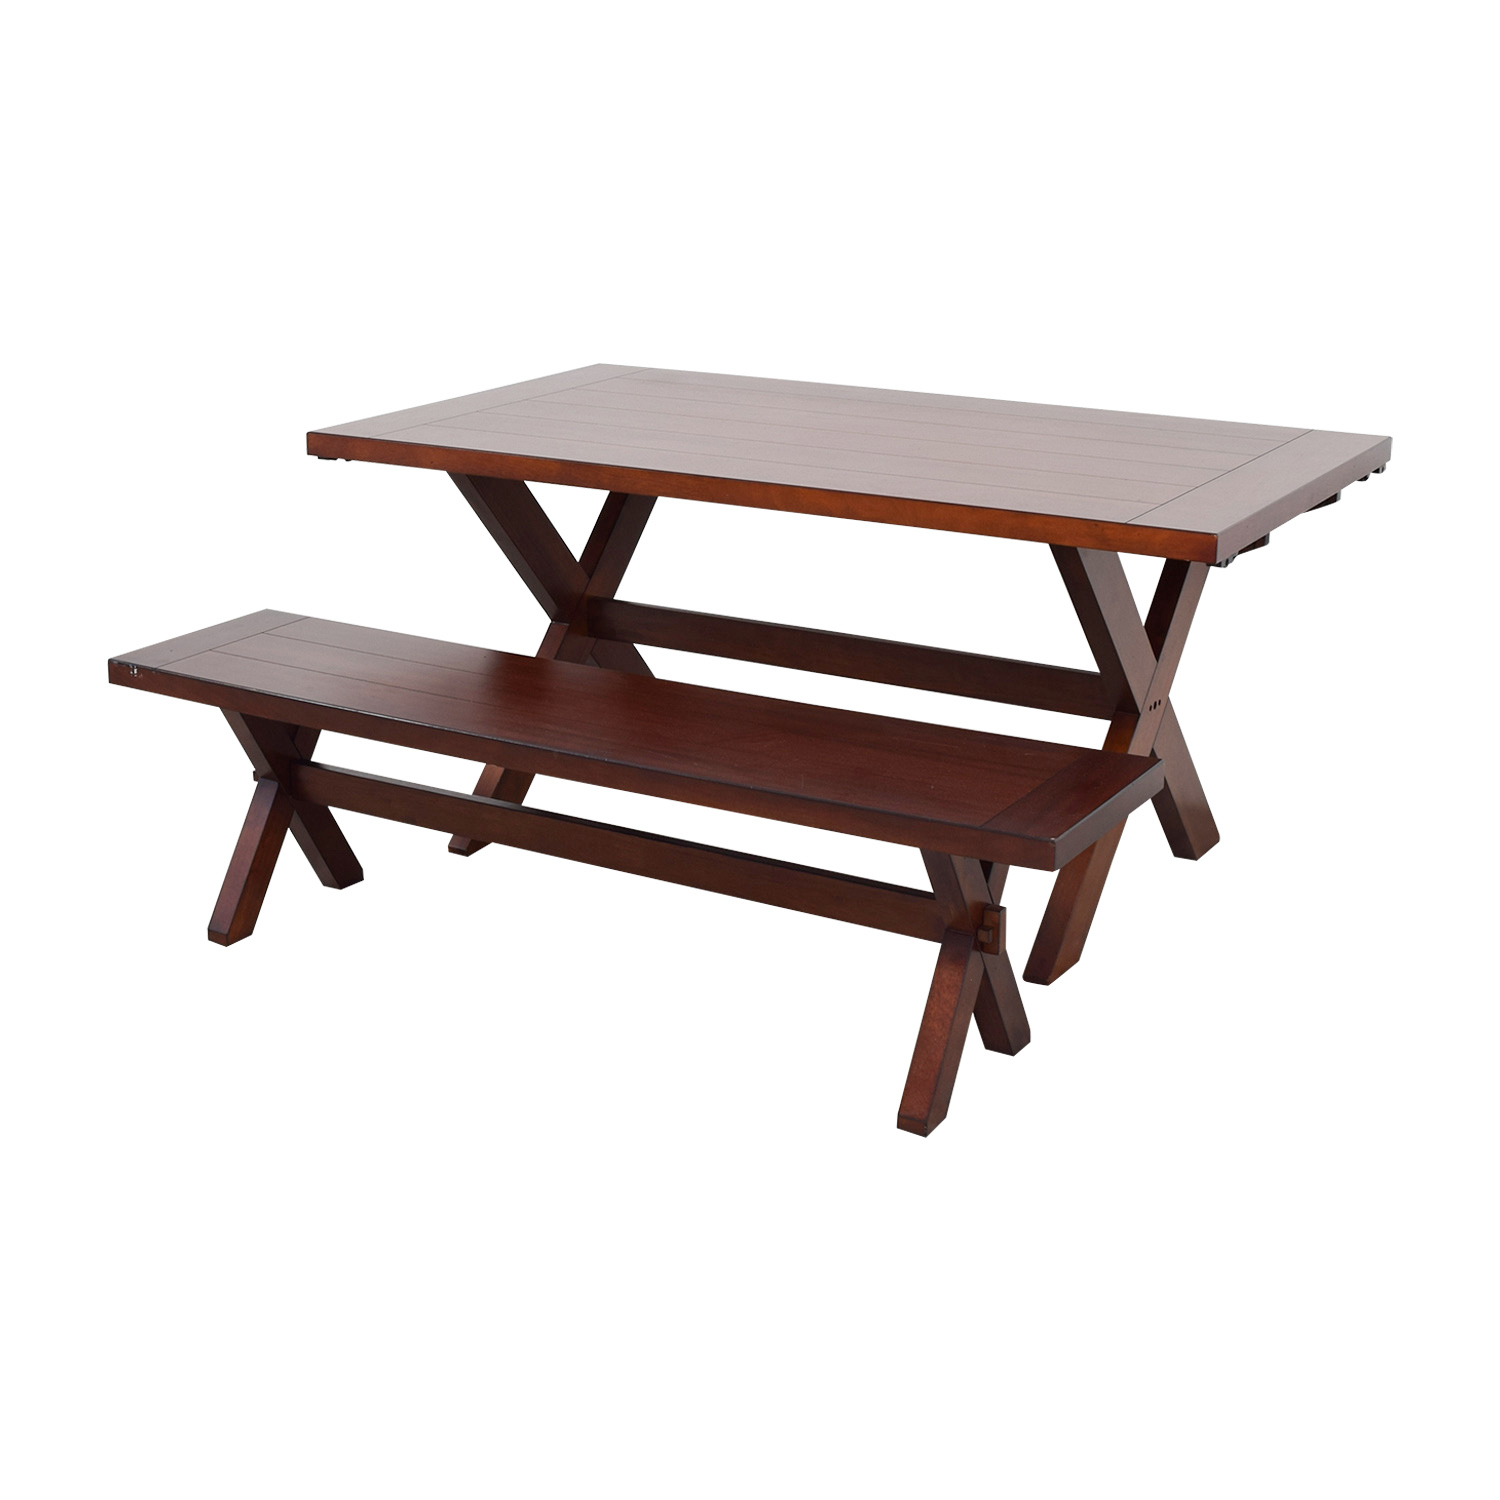 Pier 1 Dining Table: Pier 1 Imports Pier 1 Imports Nolan Wood Dining